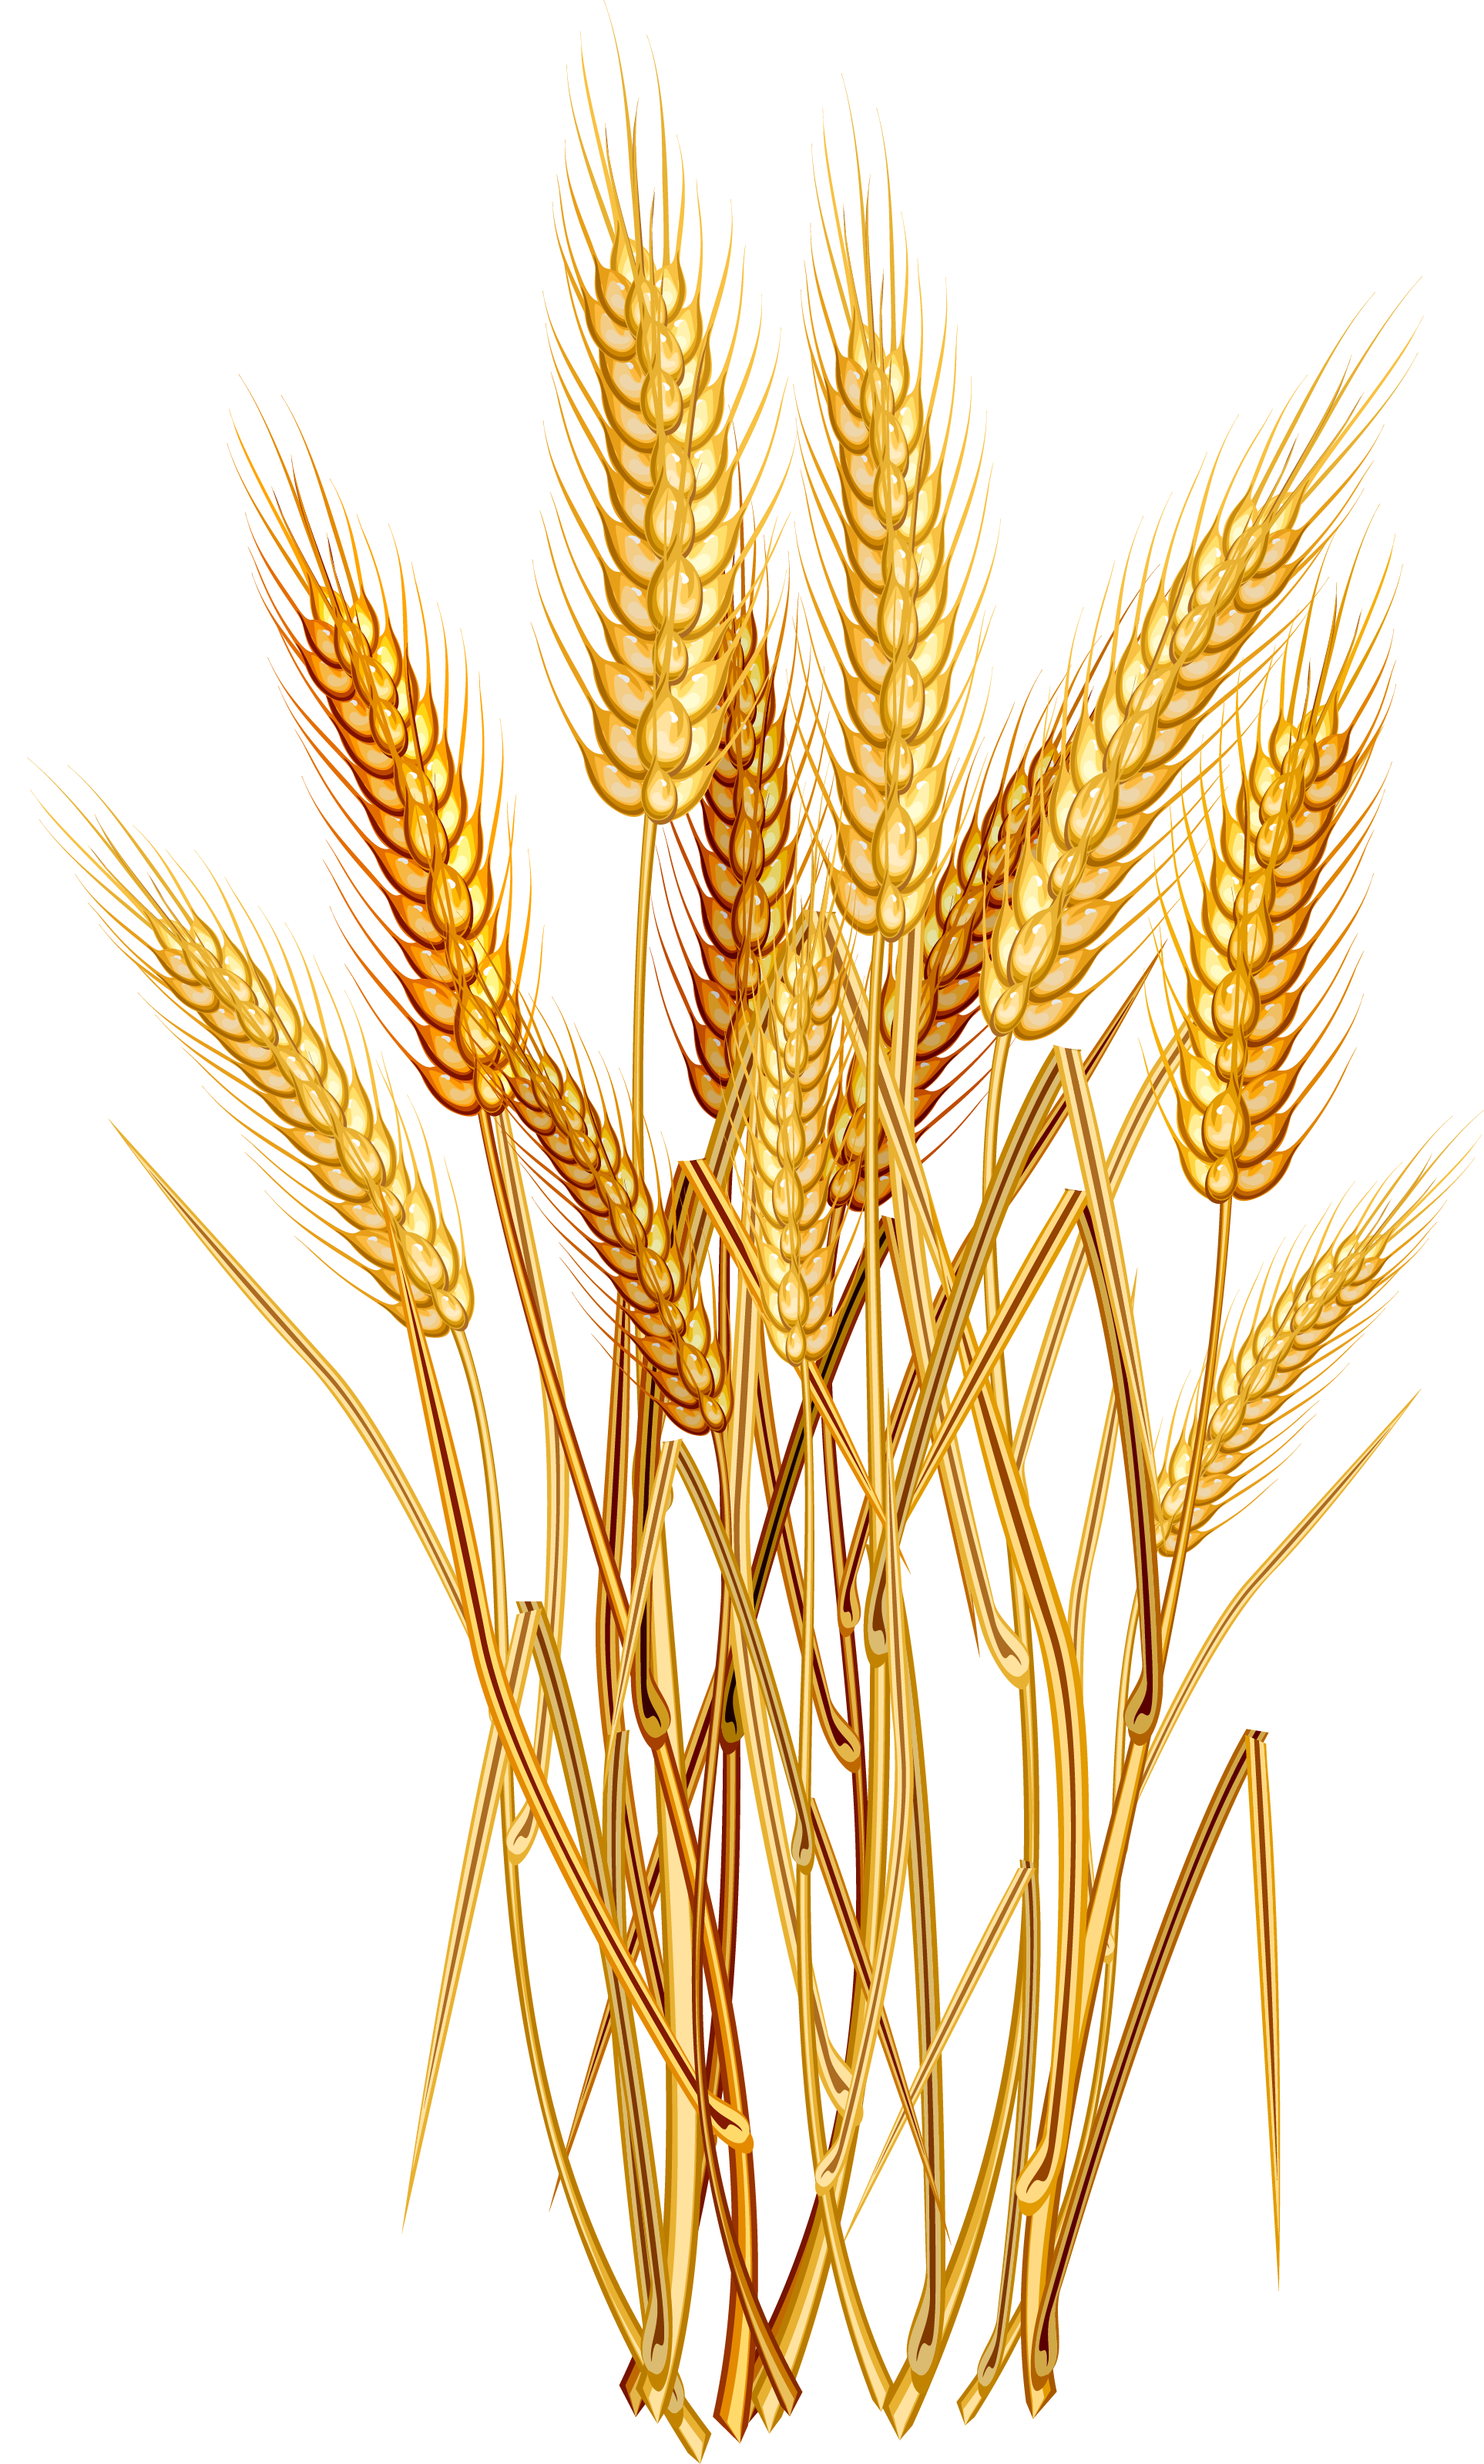 Wheat clipart food grain. Euclidean vector clip art